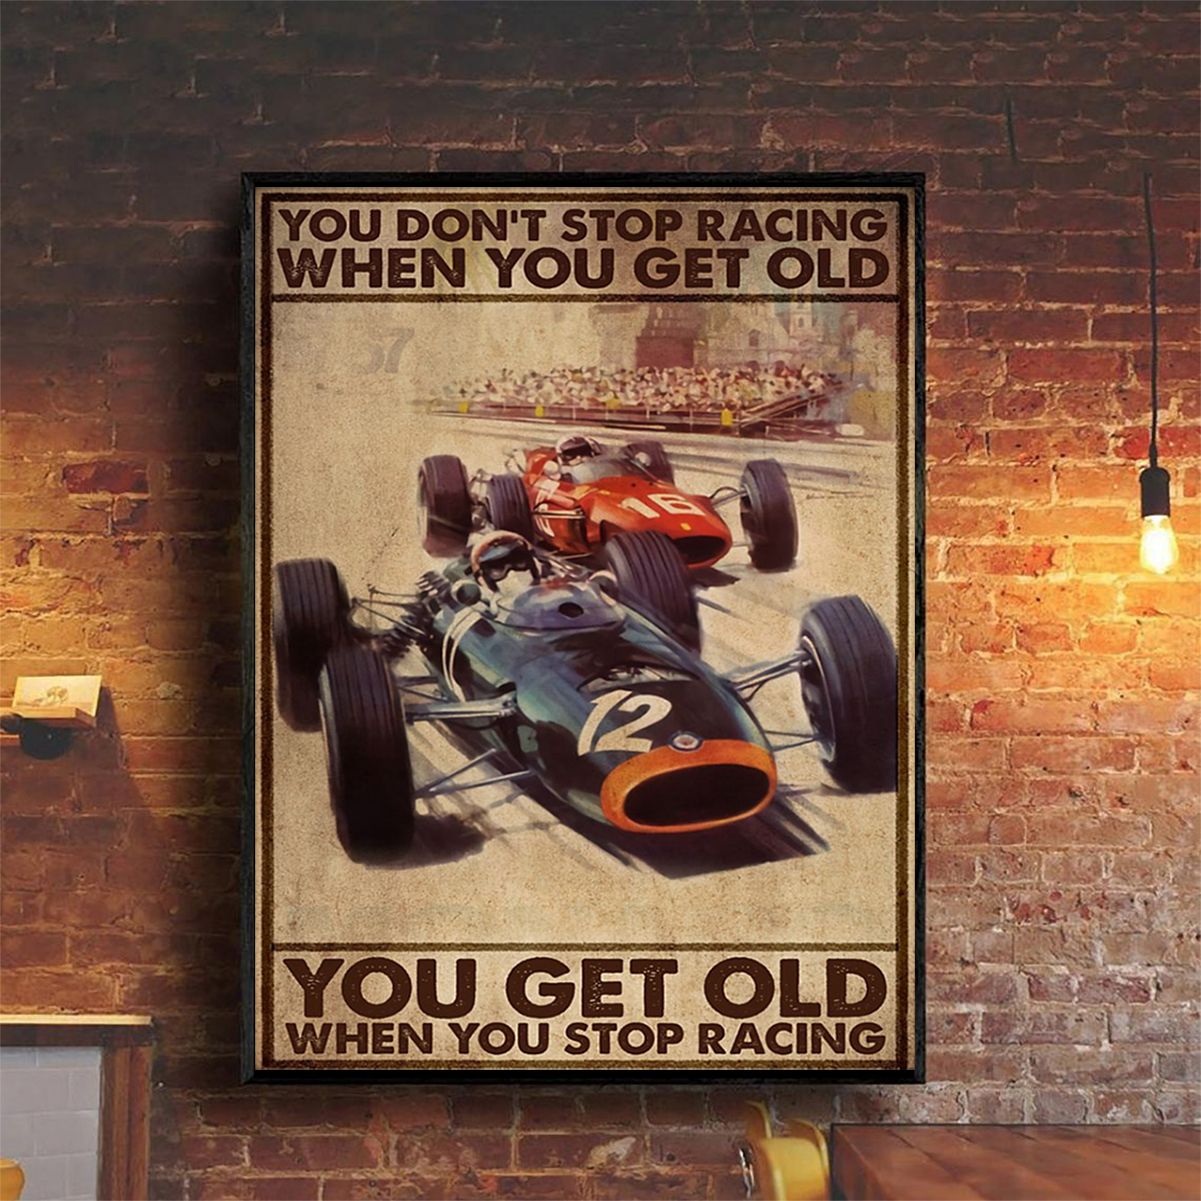 You don't stop racing when you get old you get old when you stop racing poster A2